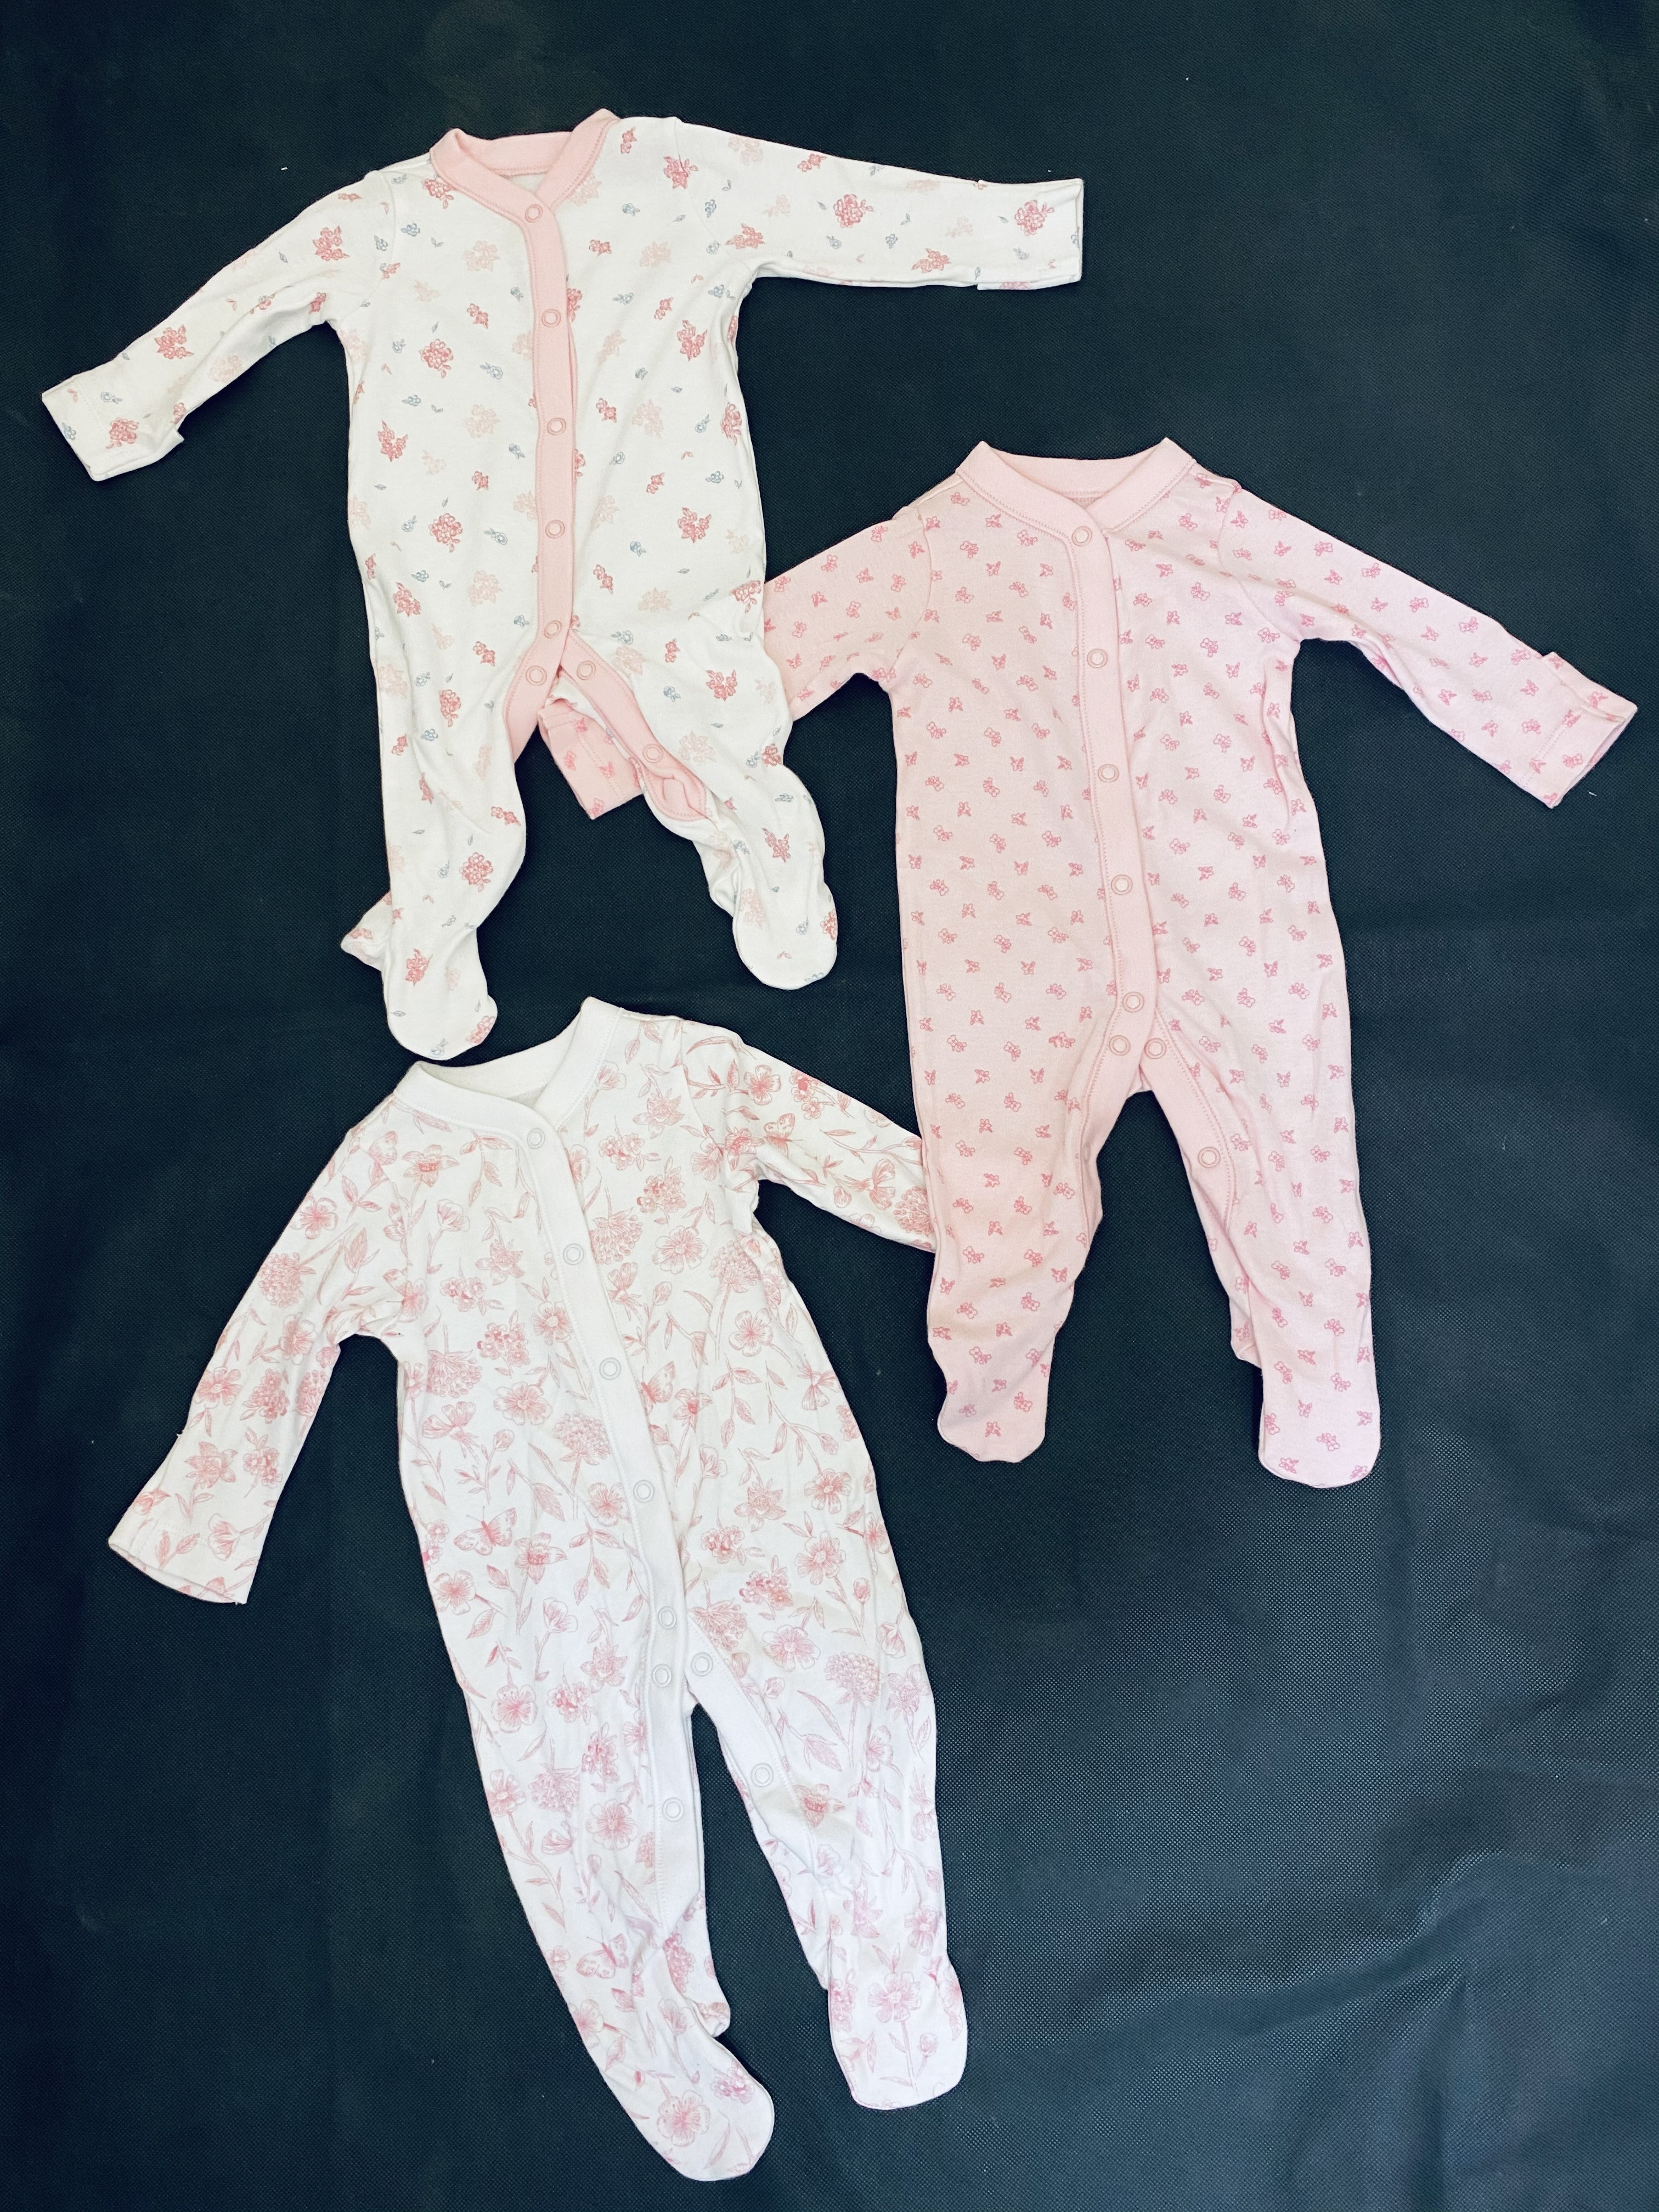 Ex Store 3 Pack of Baby Girls Sleepsuits PACK OF 9